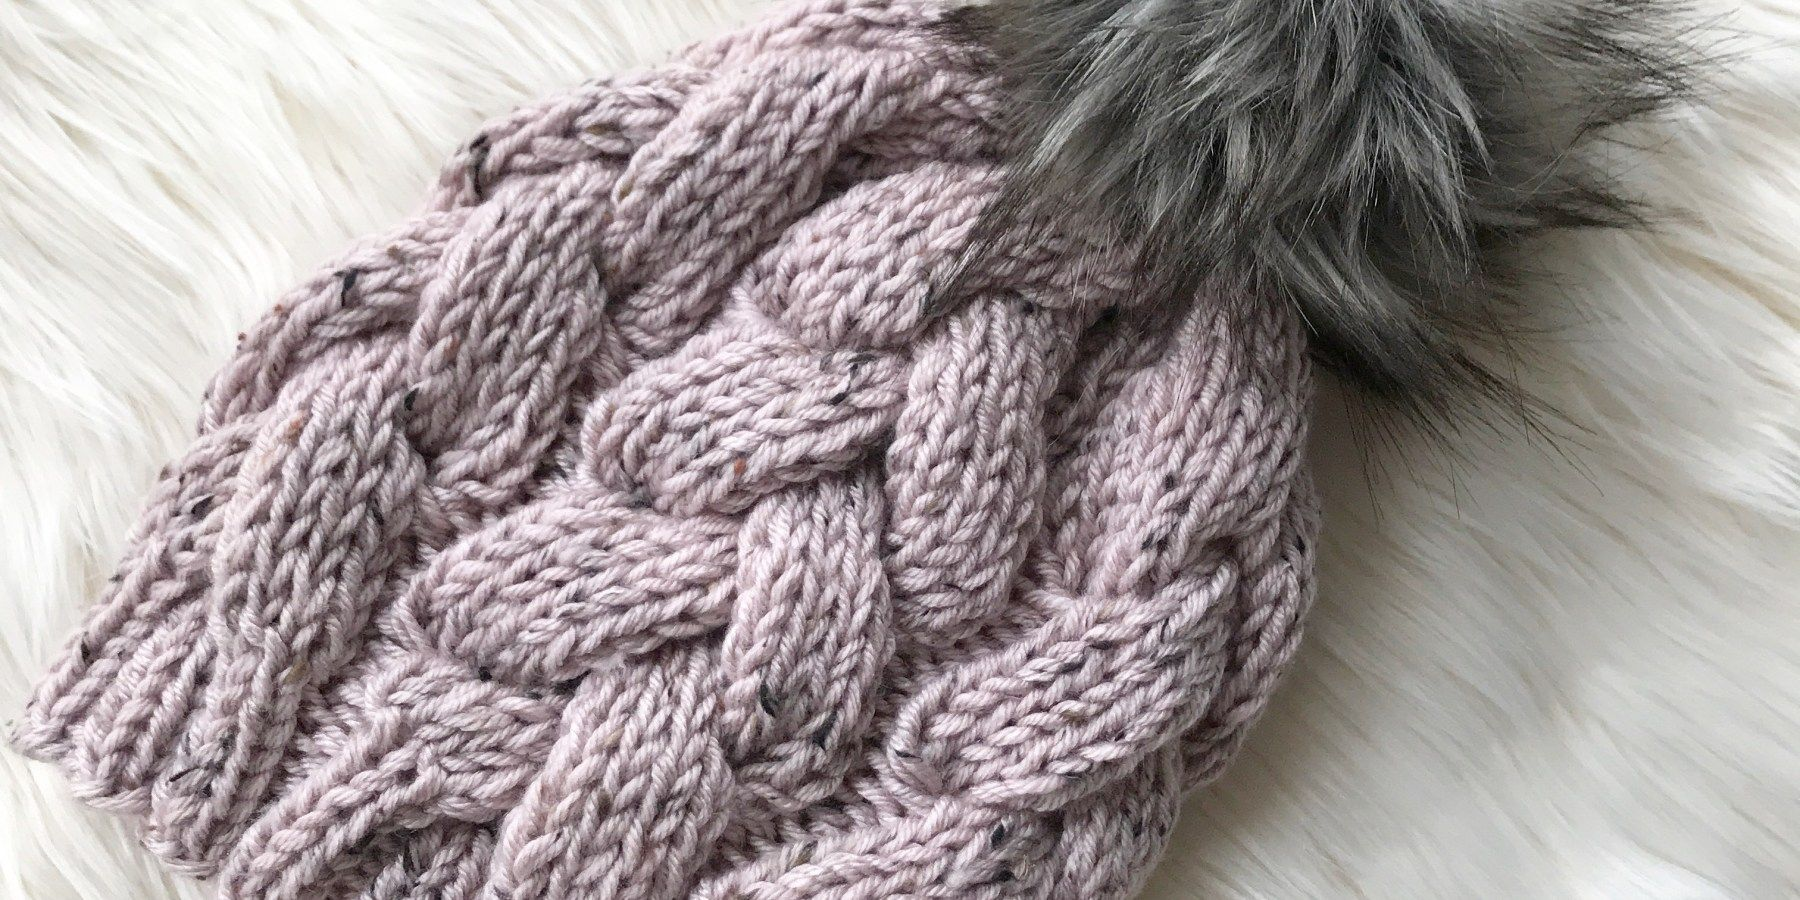 Chunky Braided Beanie (With images) | Knitted slippers ...